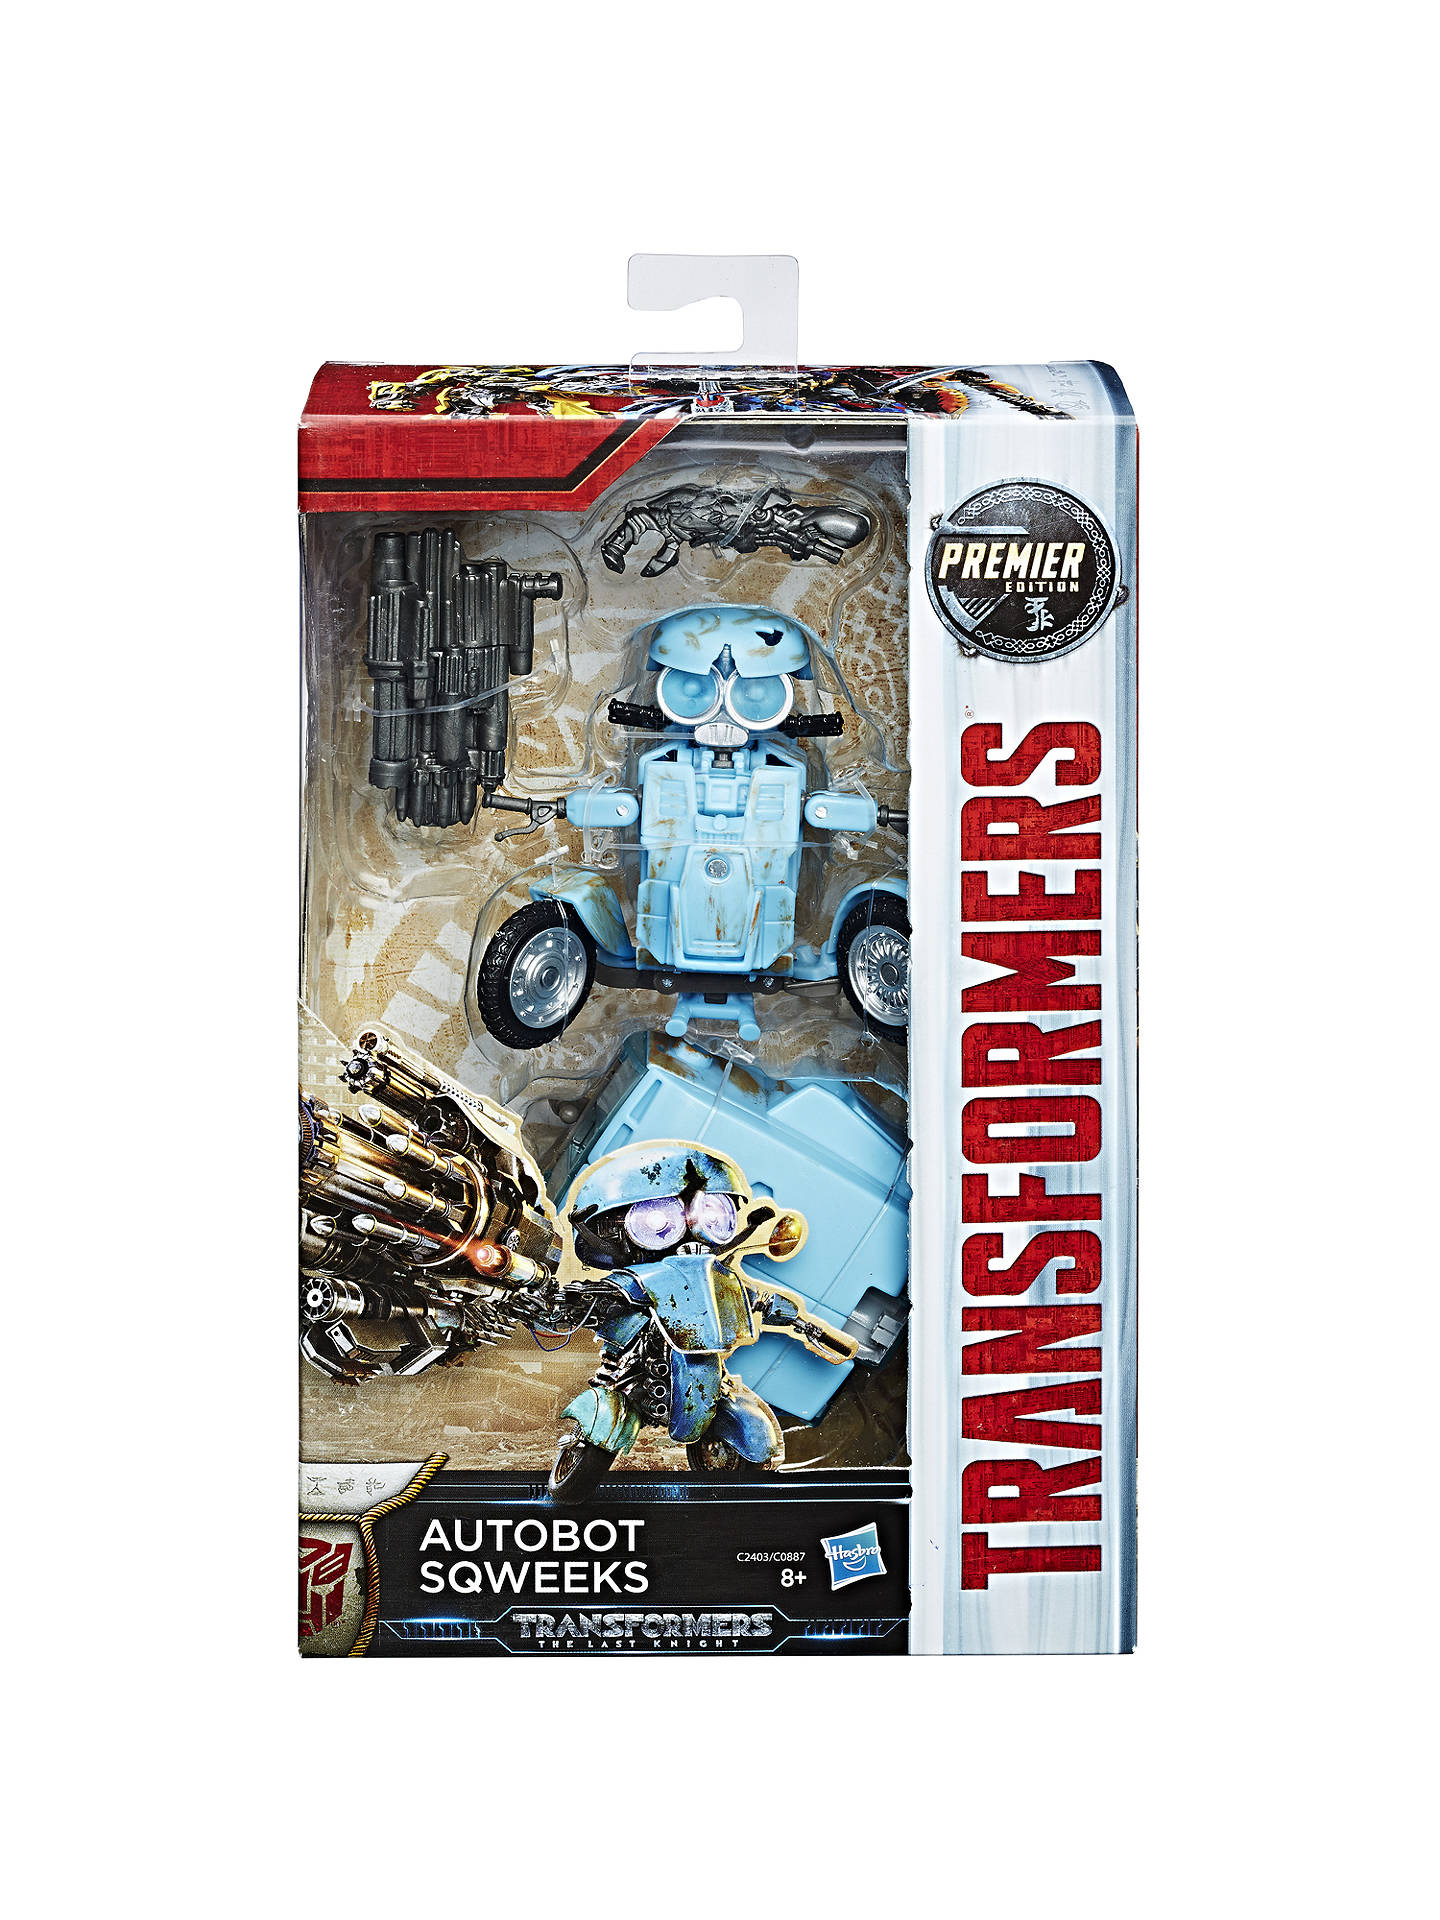 BuyTransformers: The Last Knight Premier Edition Autobot Sqweeks Action Figure Online at johnlewis.com